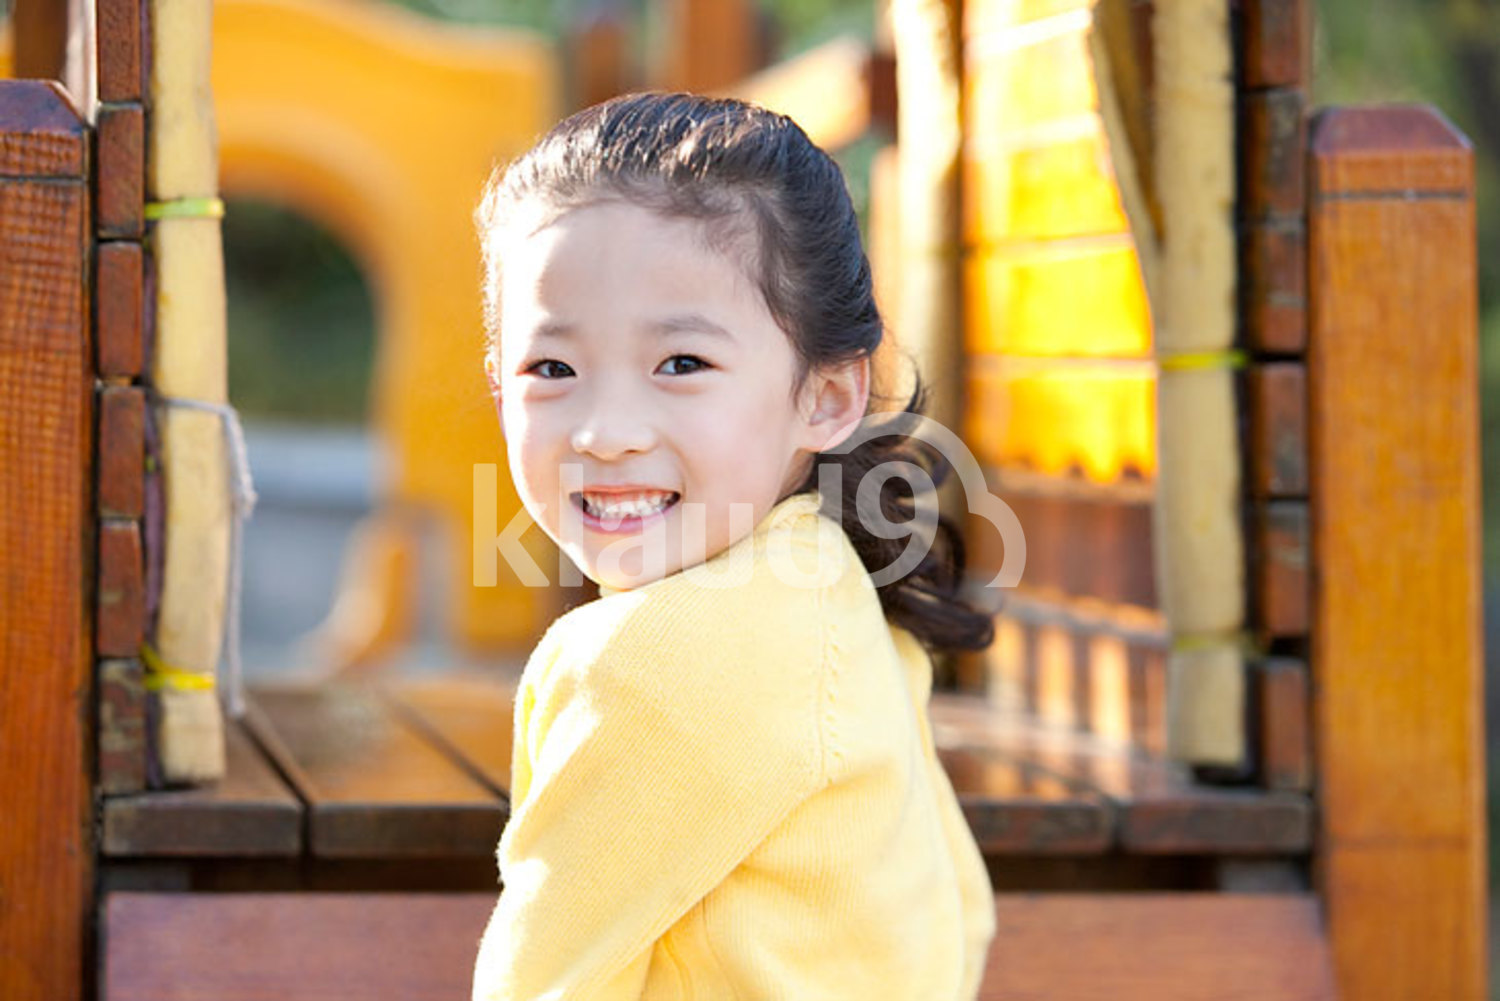 Chinese girl playing on playground toys